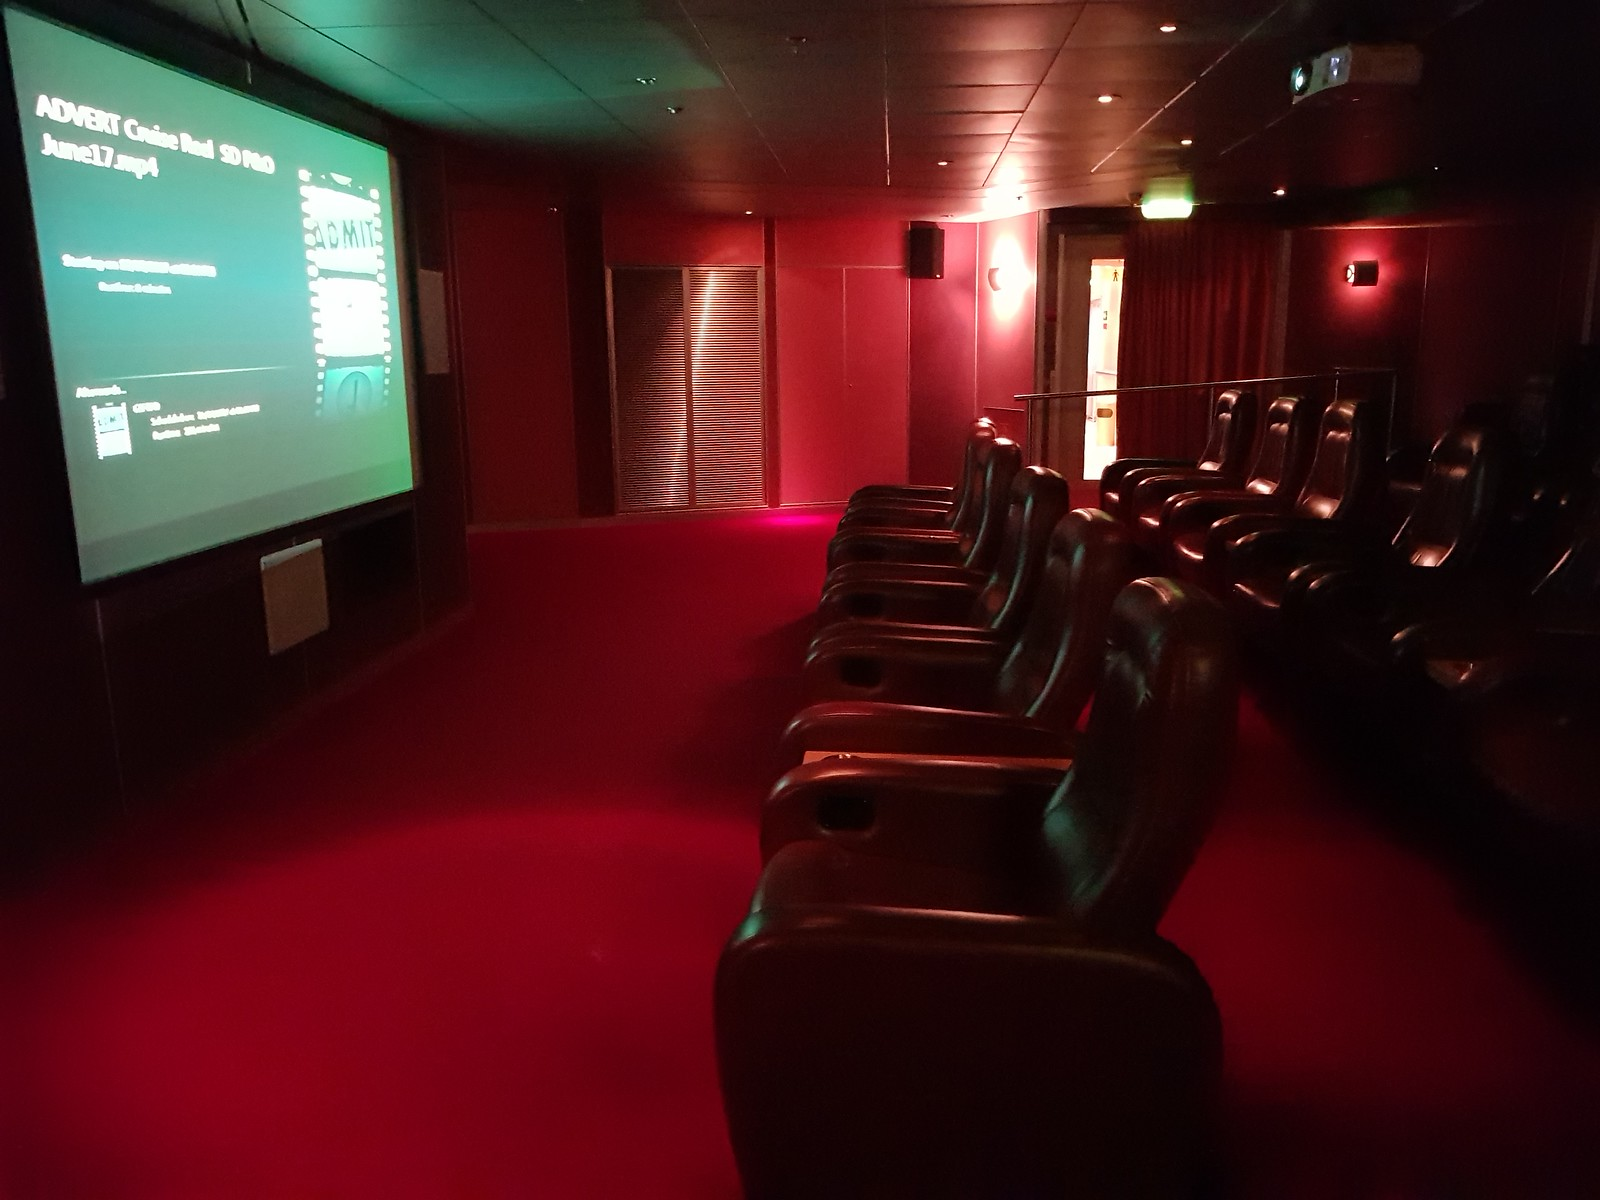 P&O Arcadia Screening Room